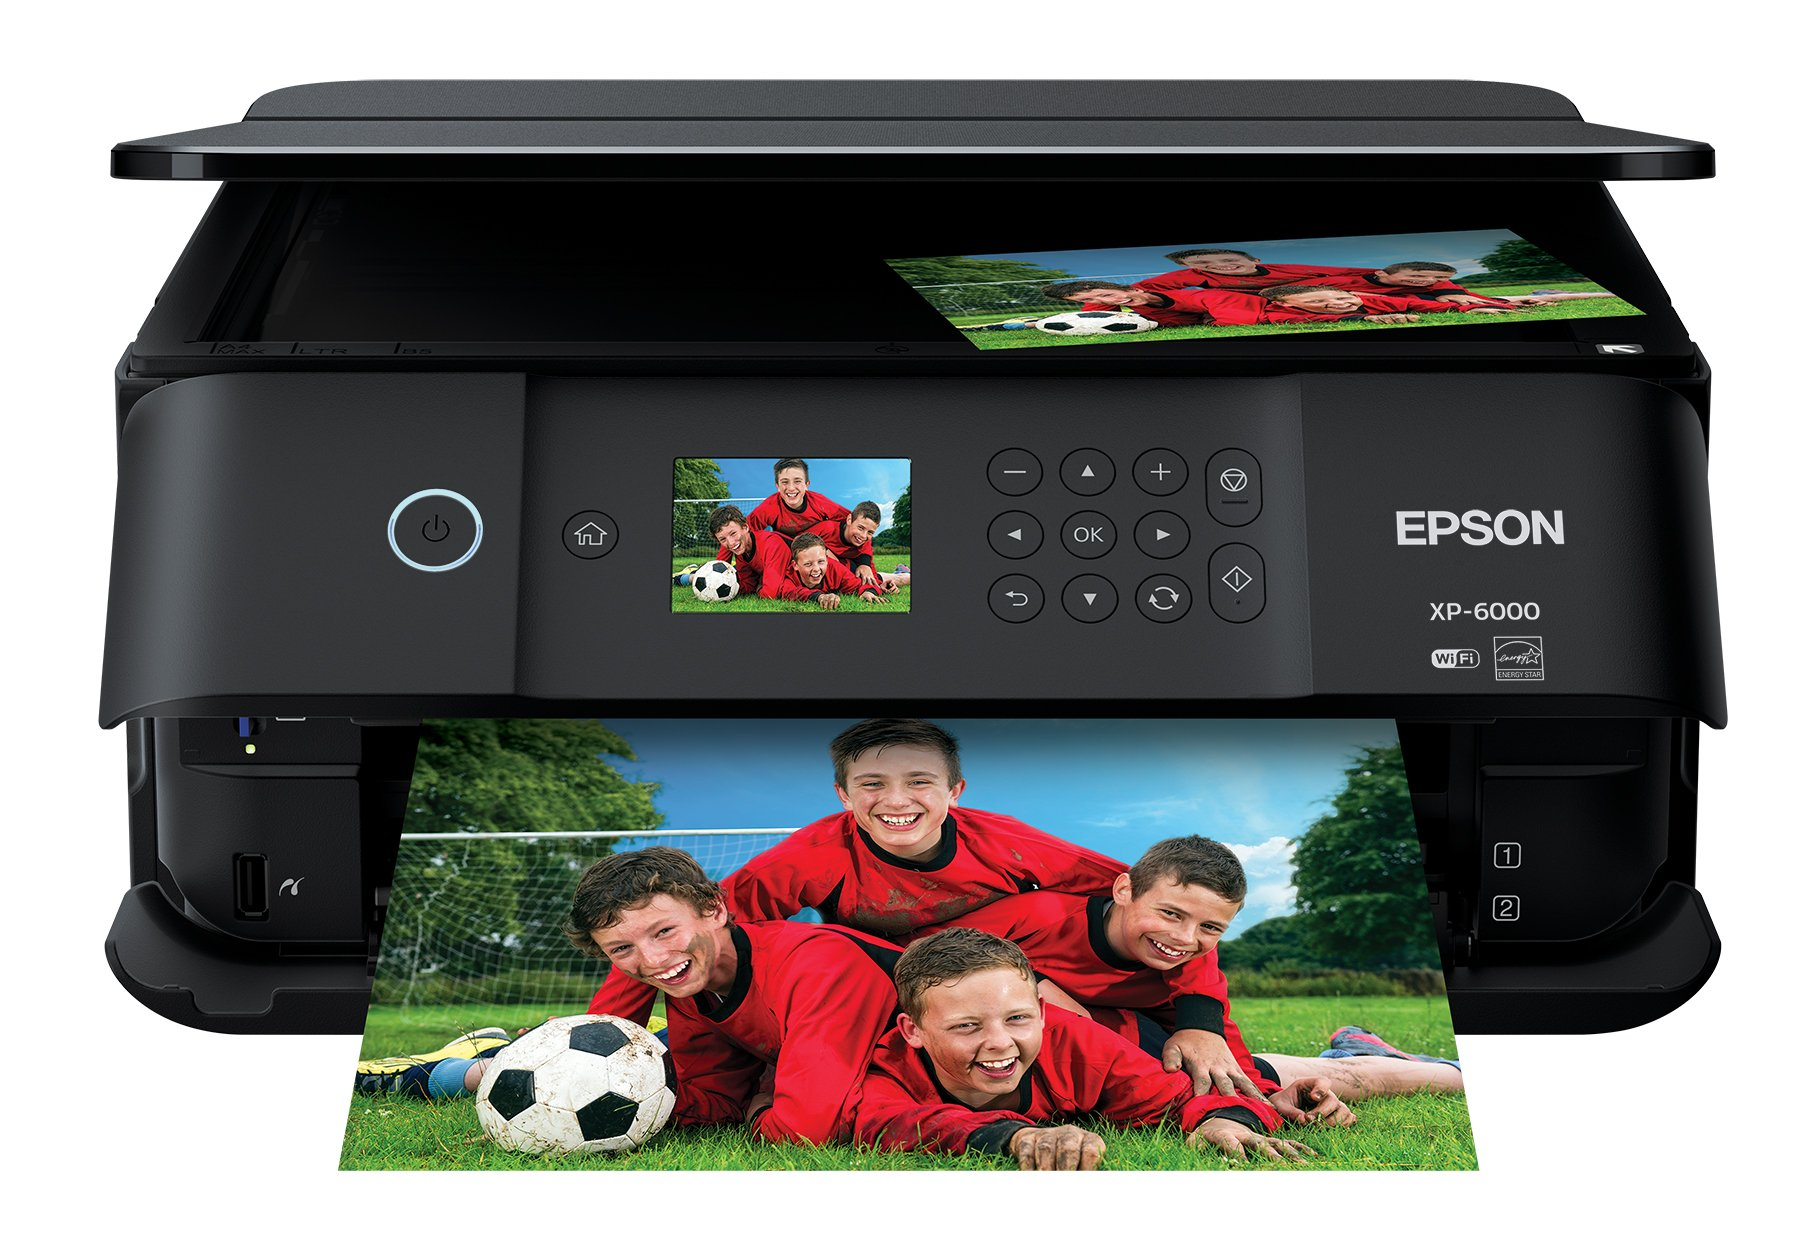 Epson Expression Premium XP-6000 Wireless Color Photo Printer with Scanner & Copier, Amazon Dash Replenishment Enabled